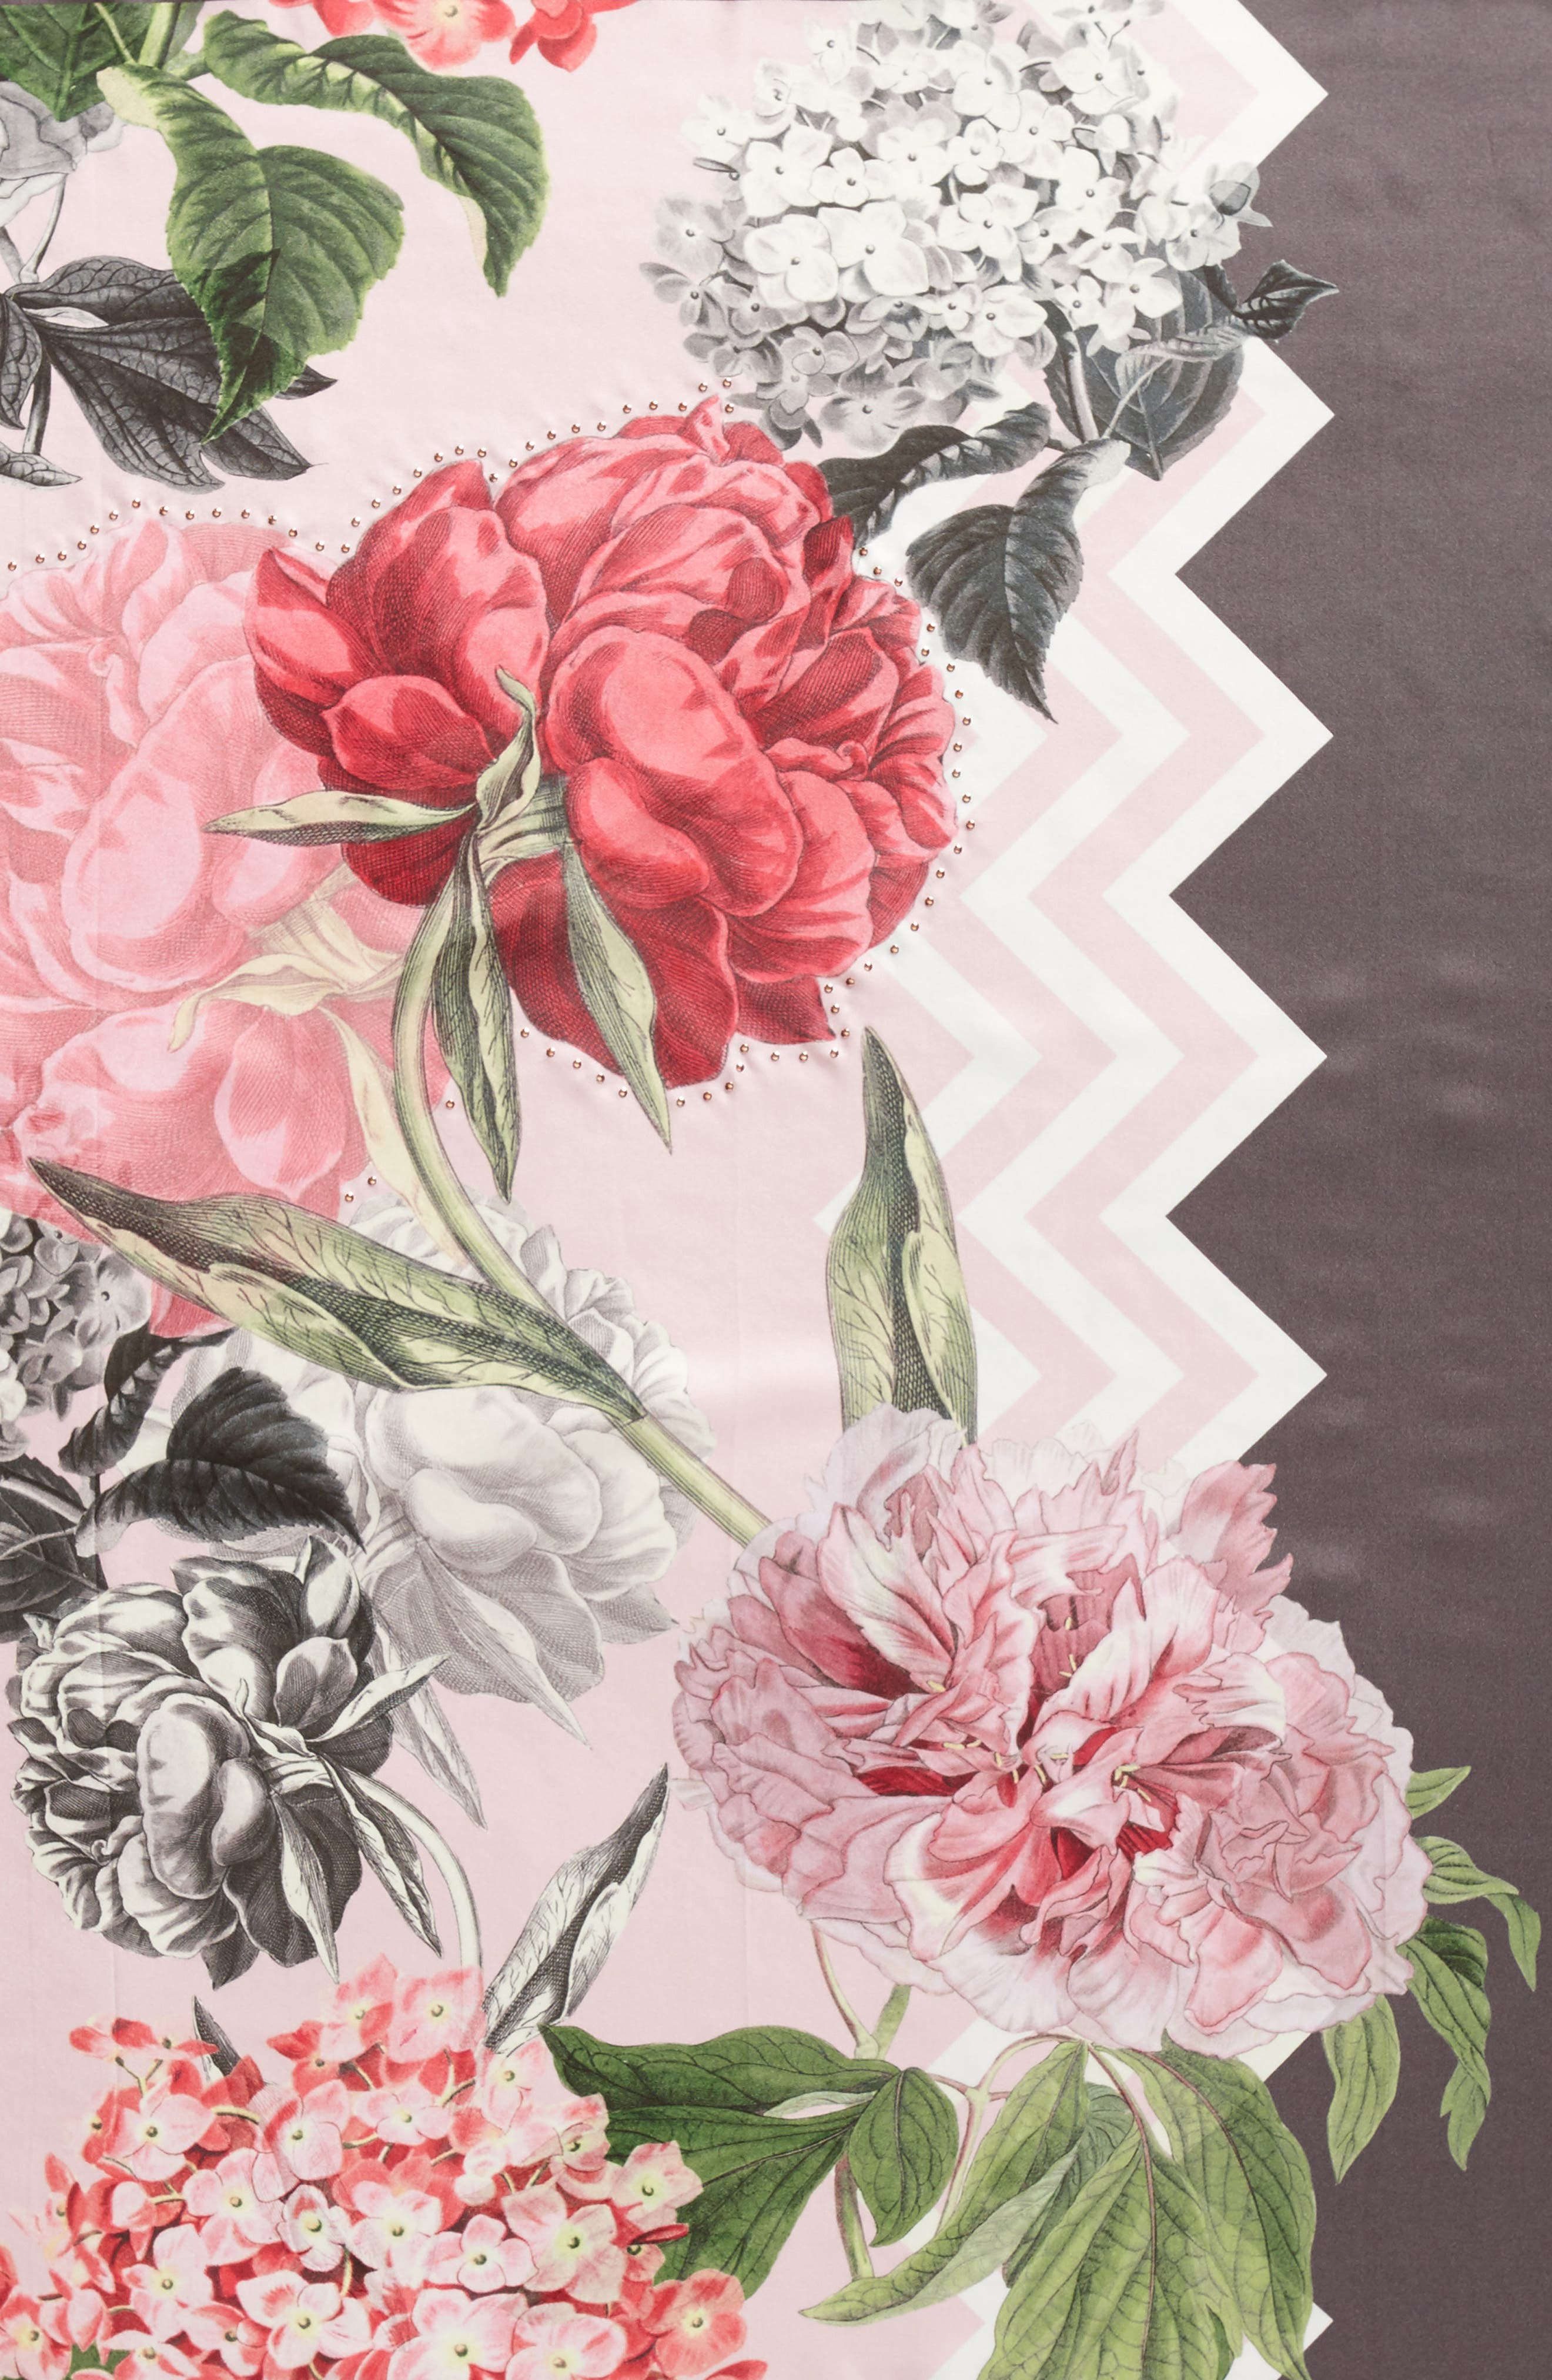 Palace Gardens Square Silk Scarf,                             Alternate thumbnail 4, color,                             Dusky Pink